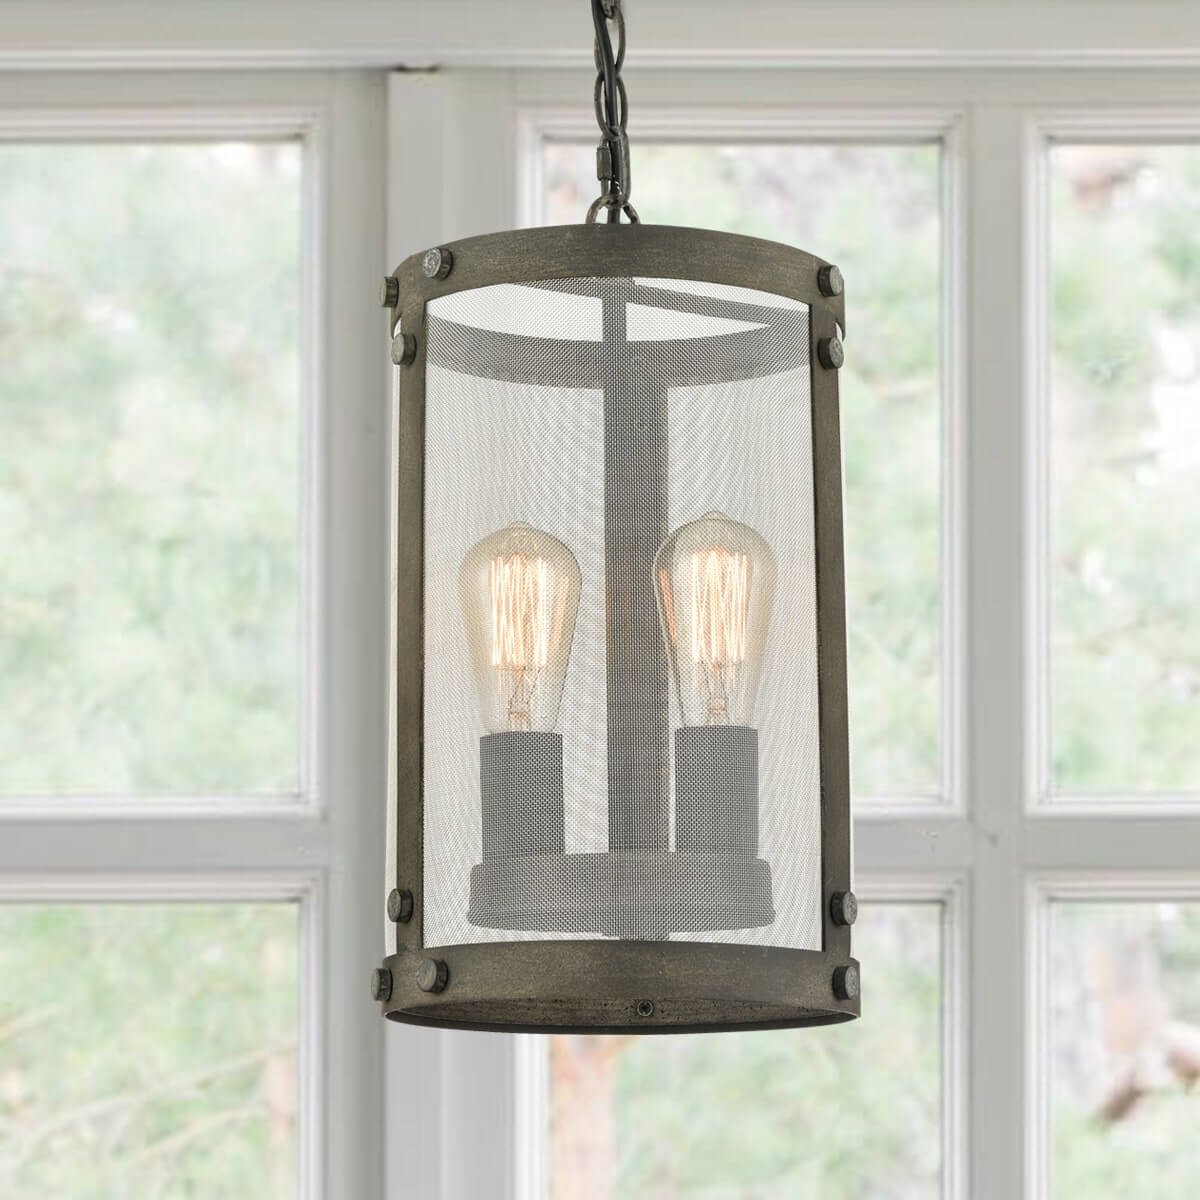 Vintage Cylinder Pendant with Metal Mesh Chain-Hung